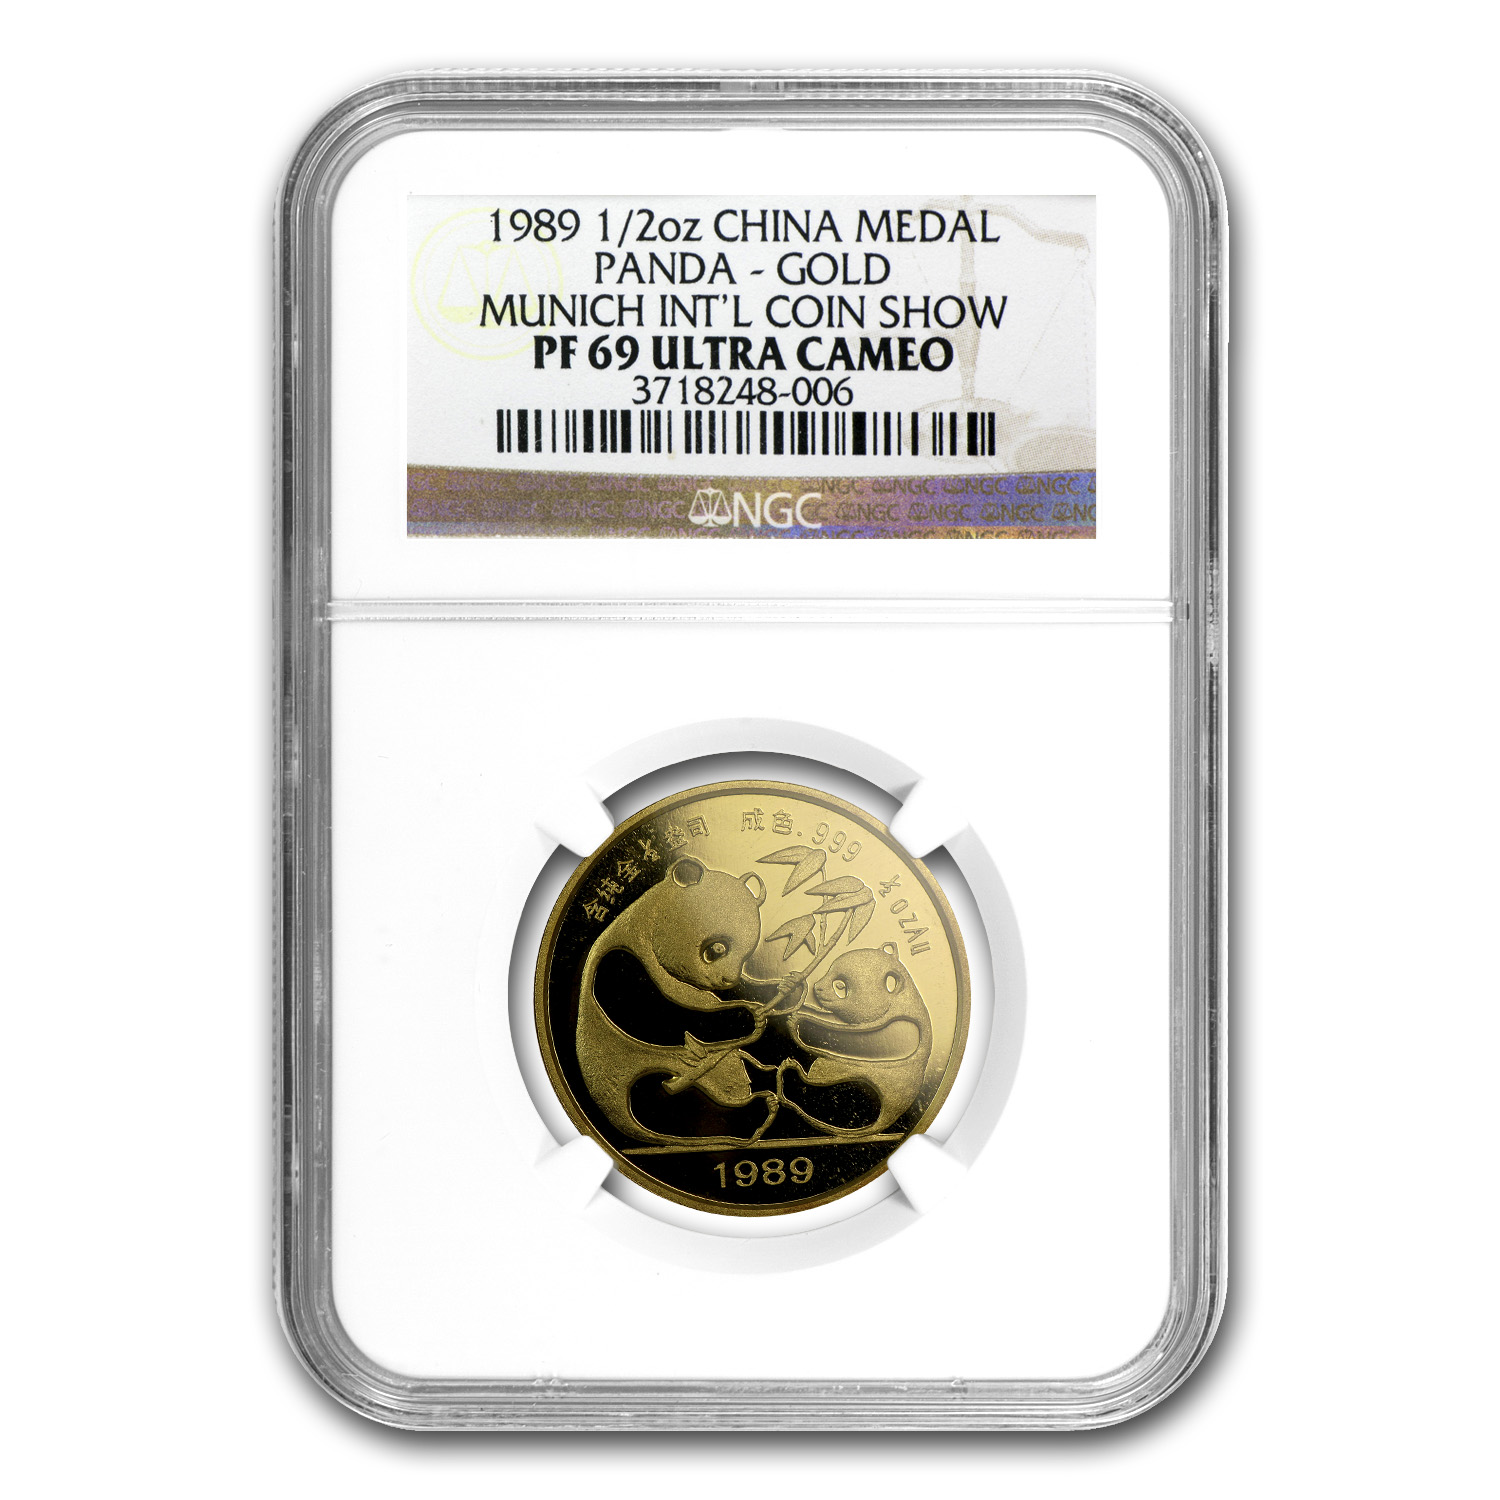 1989 1/2 oz Gold Chinese Panda PF-69 NGC (Munich Coin Show)